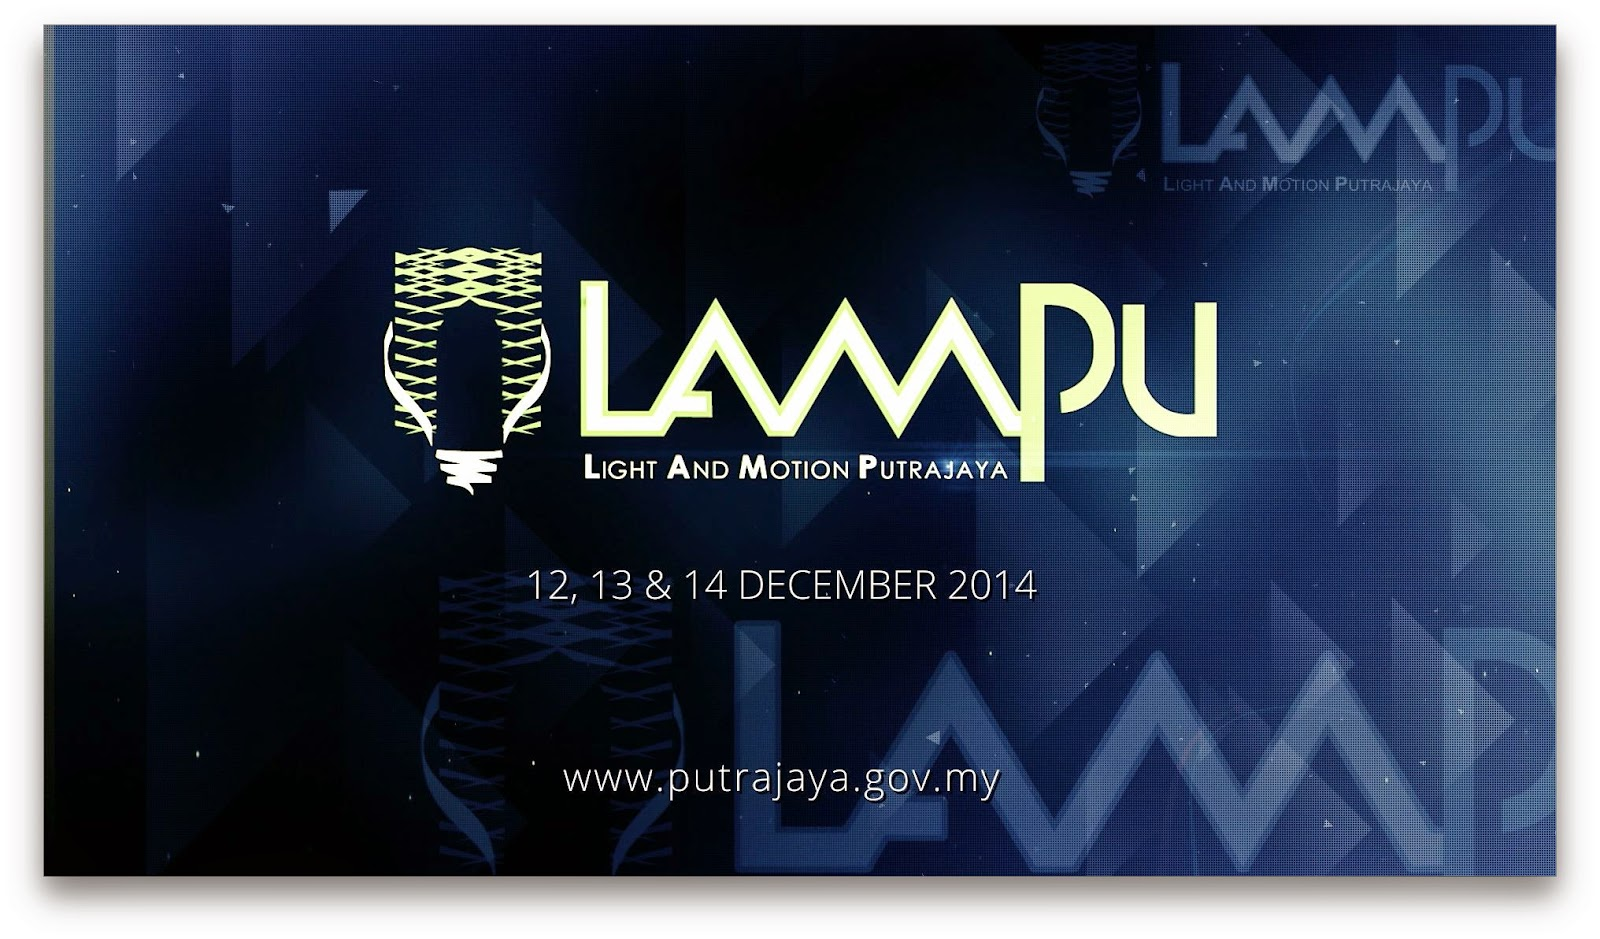 Light And Motion Festival (LAMPU) 2014